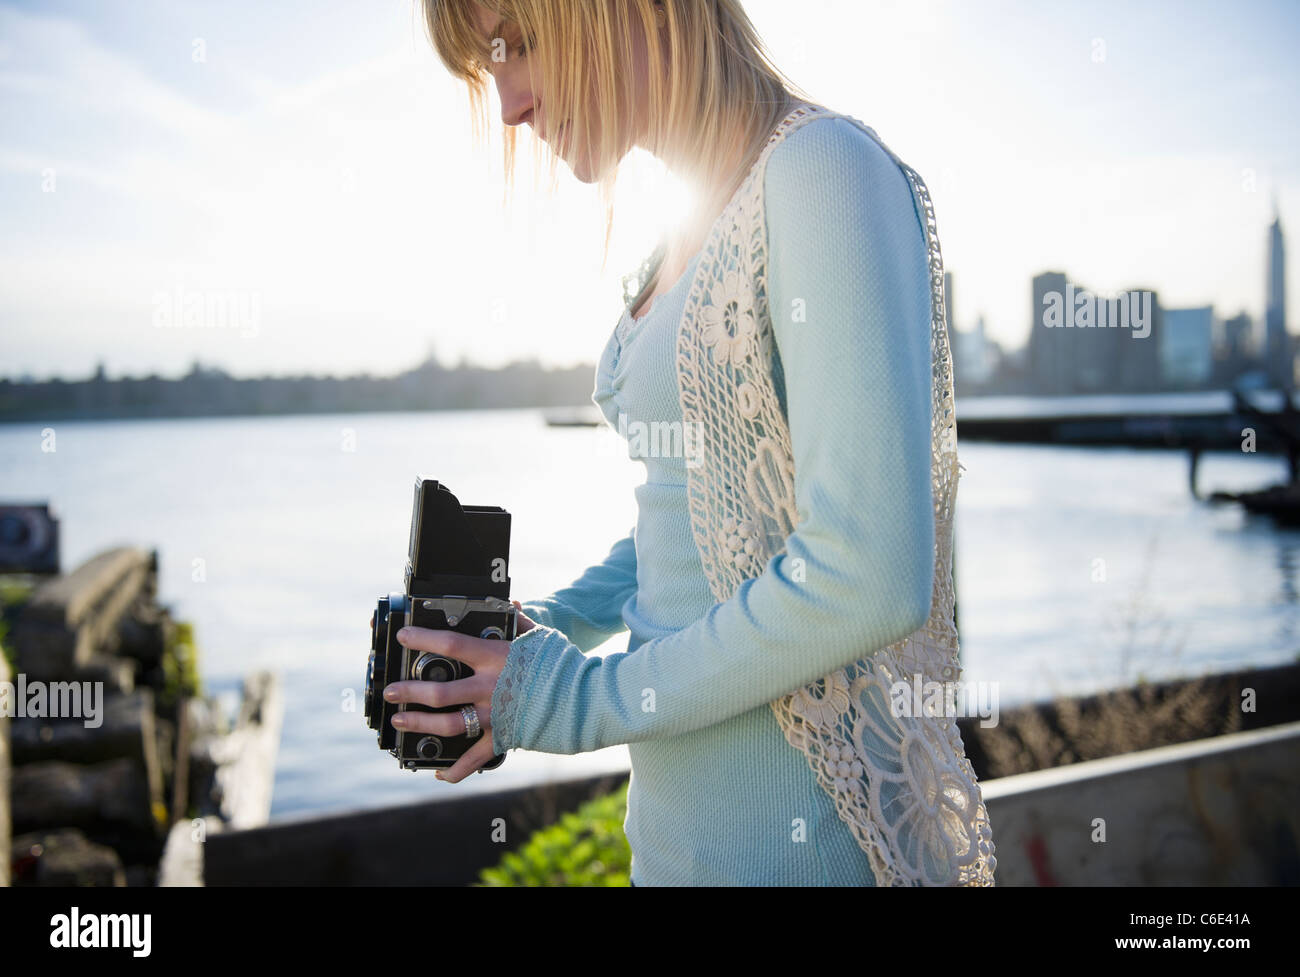 USA, Brooklyn, Williamsburg, Woman using vintage camera - Stock Image